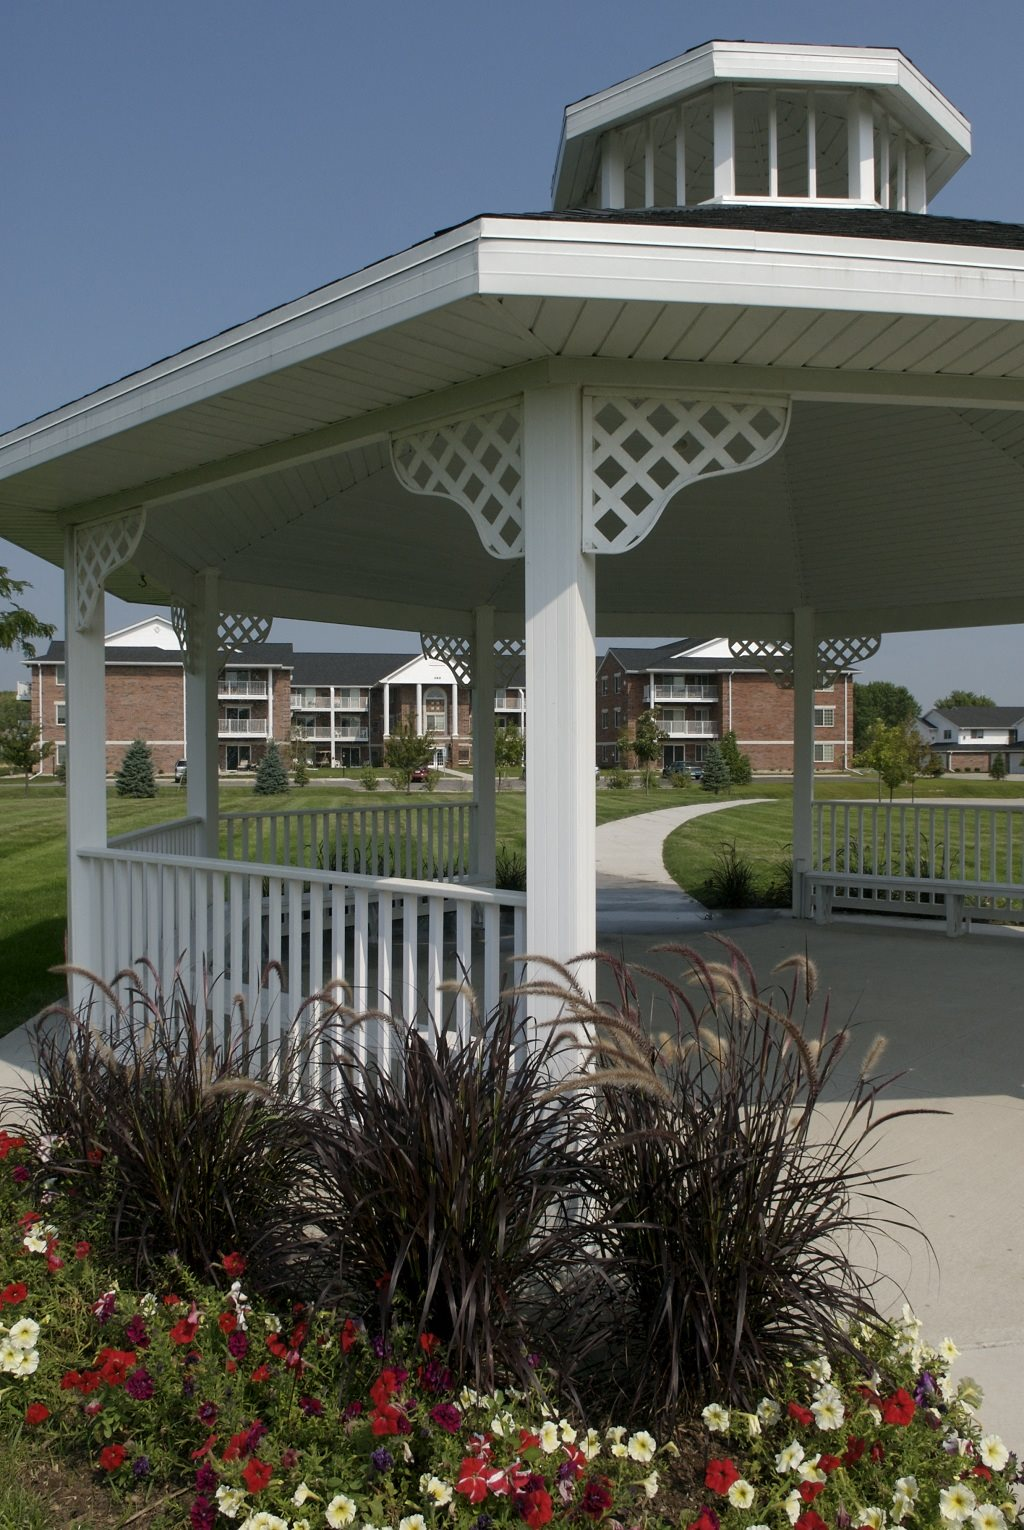 Courtyard Cabanas at Ridgeview Highlands Apartments & Townhomes,640 Ridgeview Circle, Wisconsin